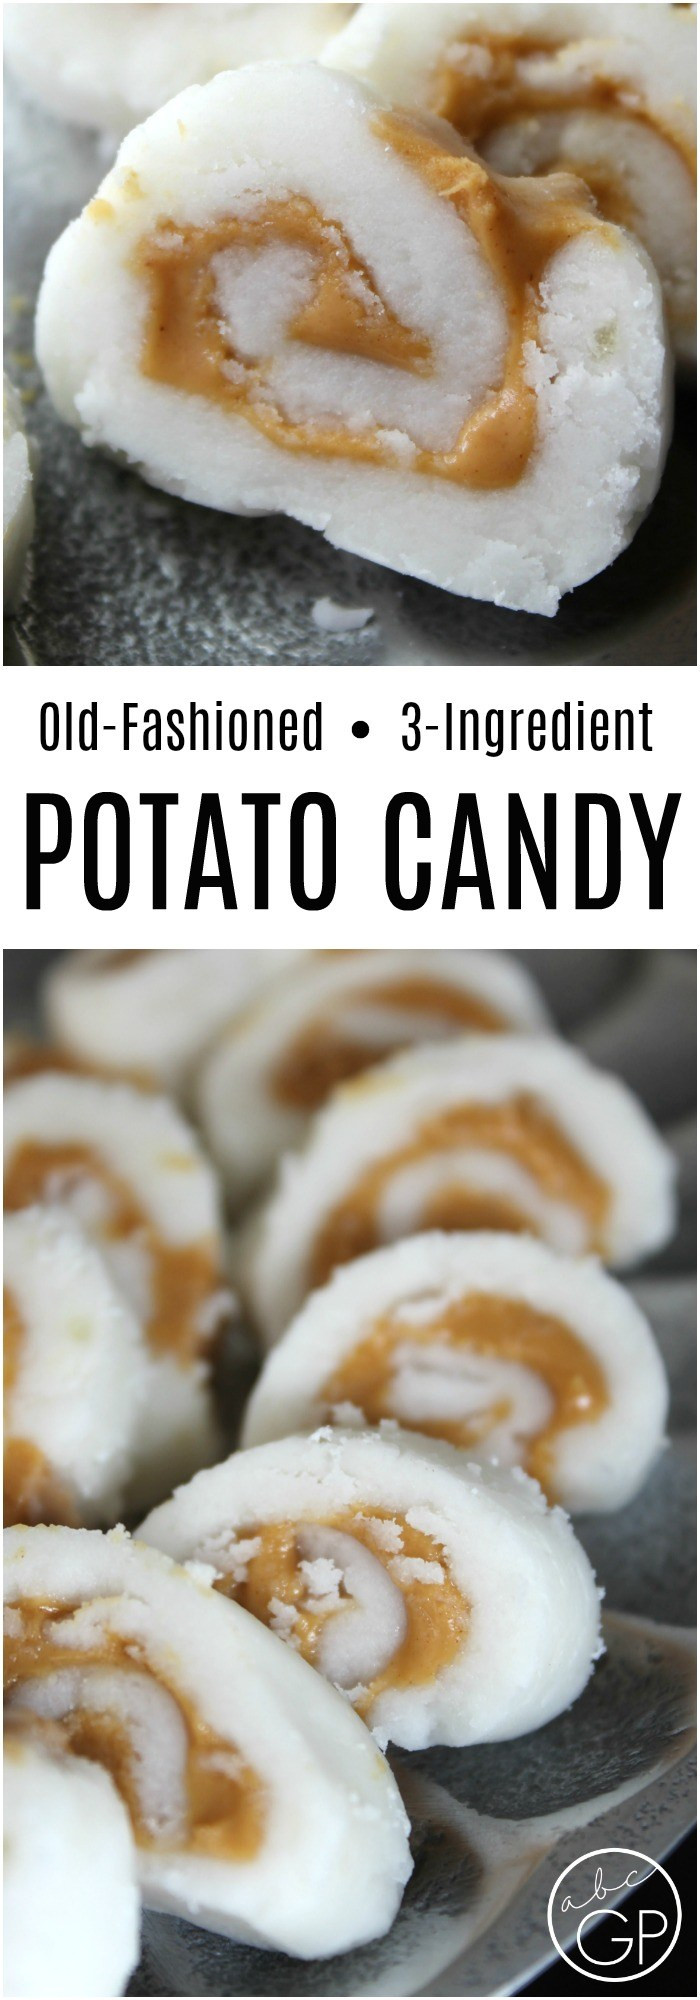 Old Fashioned Christmas Candy Recipes  3 Ingre nt Old fashioned Potato Candy Recipe